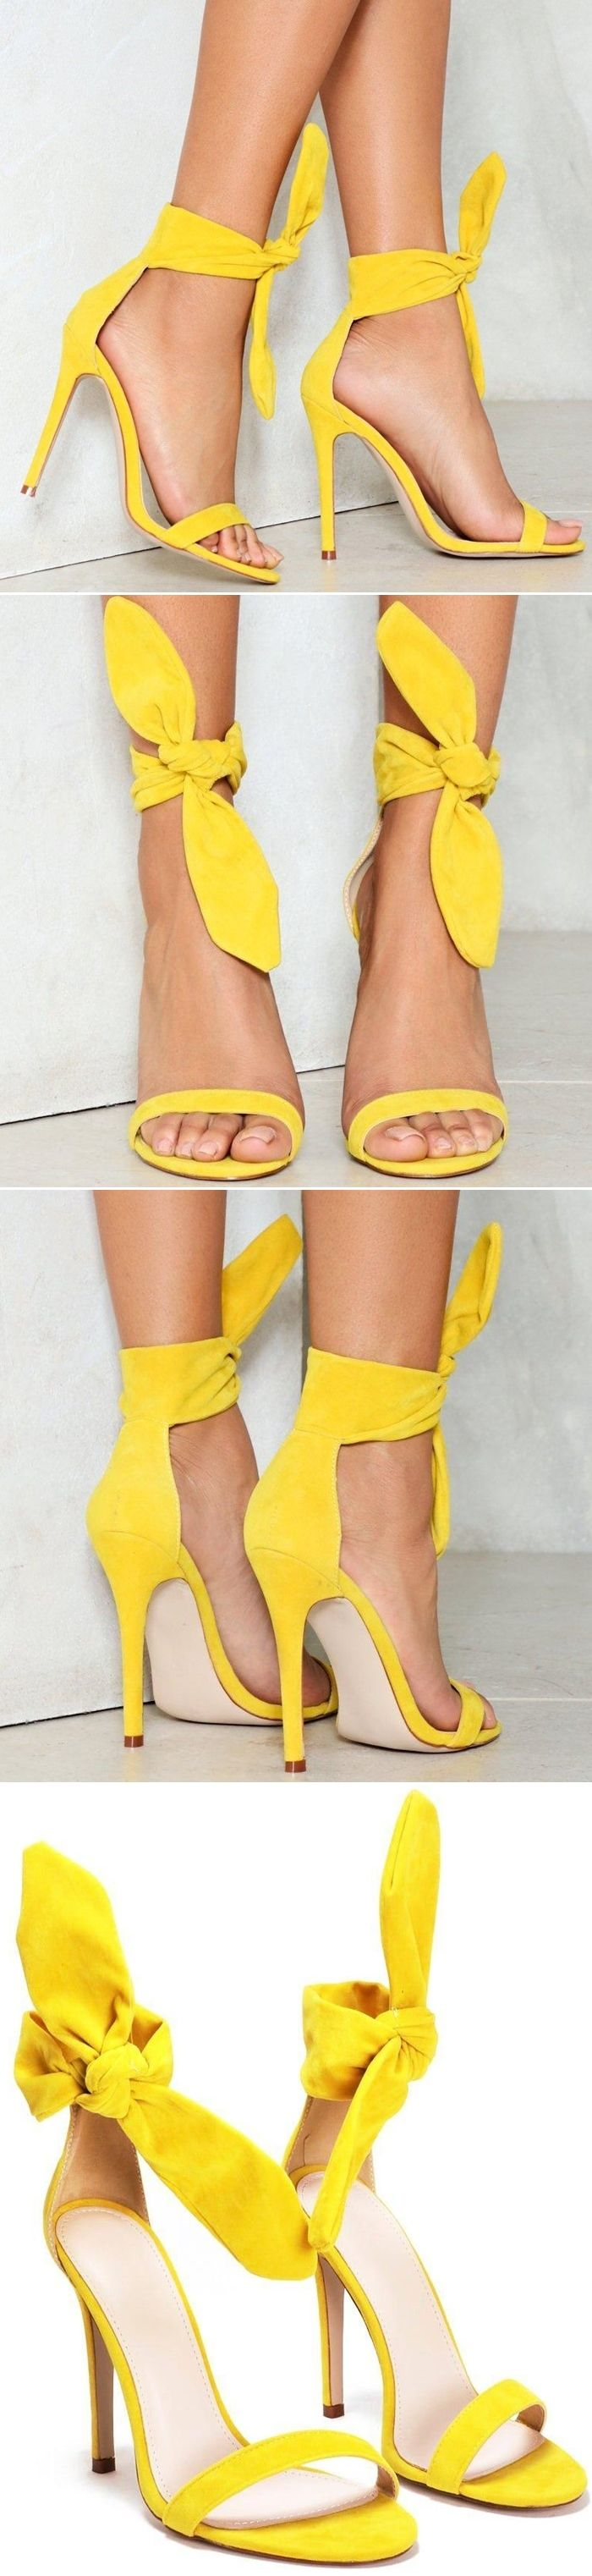 Knot a care in the world. This yellow shoe comes in vegan suede and  features a stiletto heel, tie closure at ankle, and open toe.